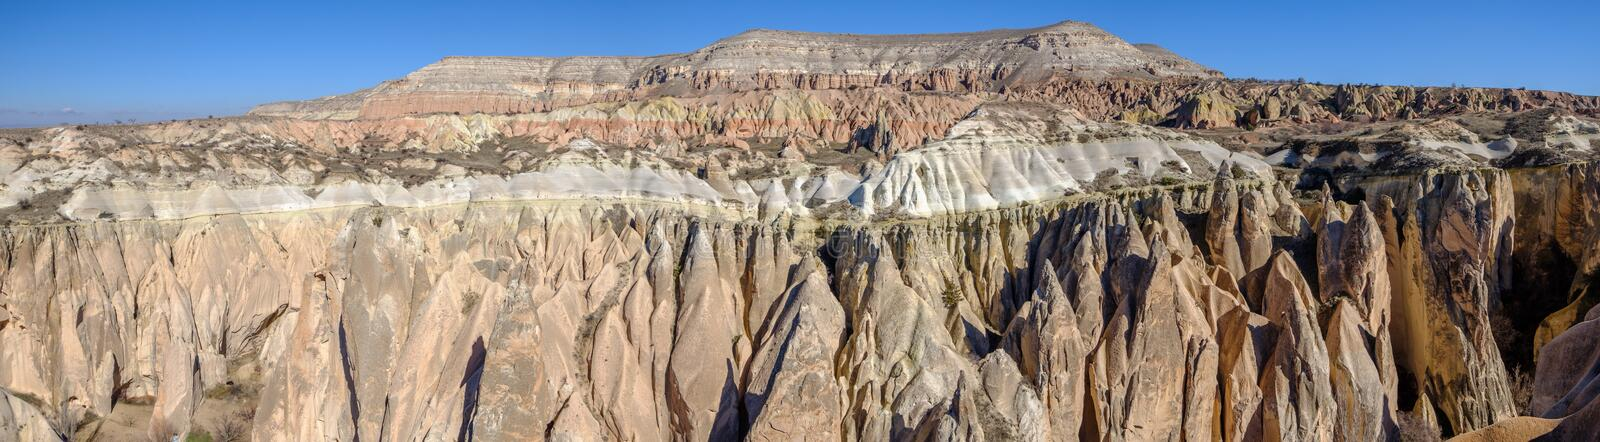 Panoramic view of the stone formations in the Red Valley of Cappadocia, Turkey stock images